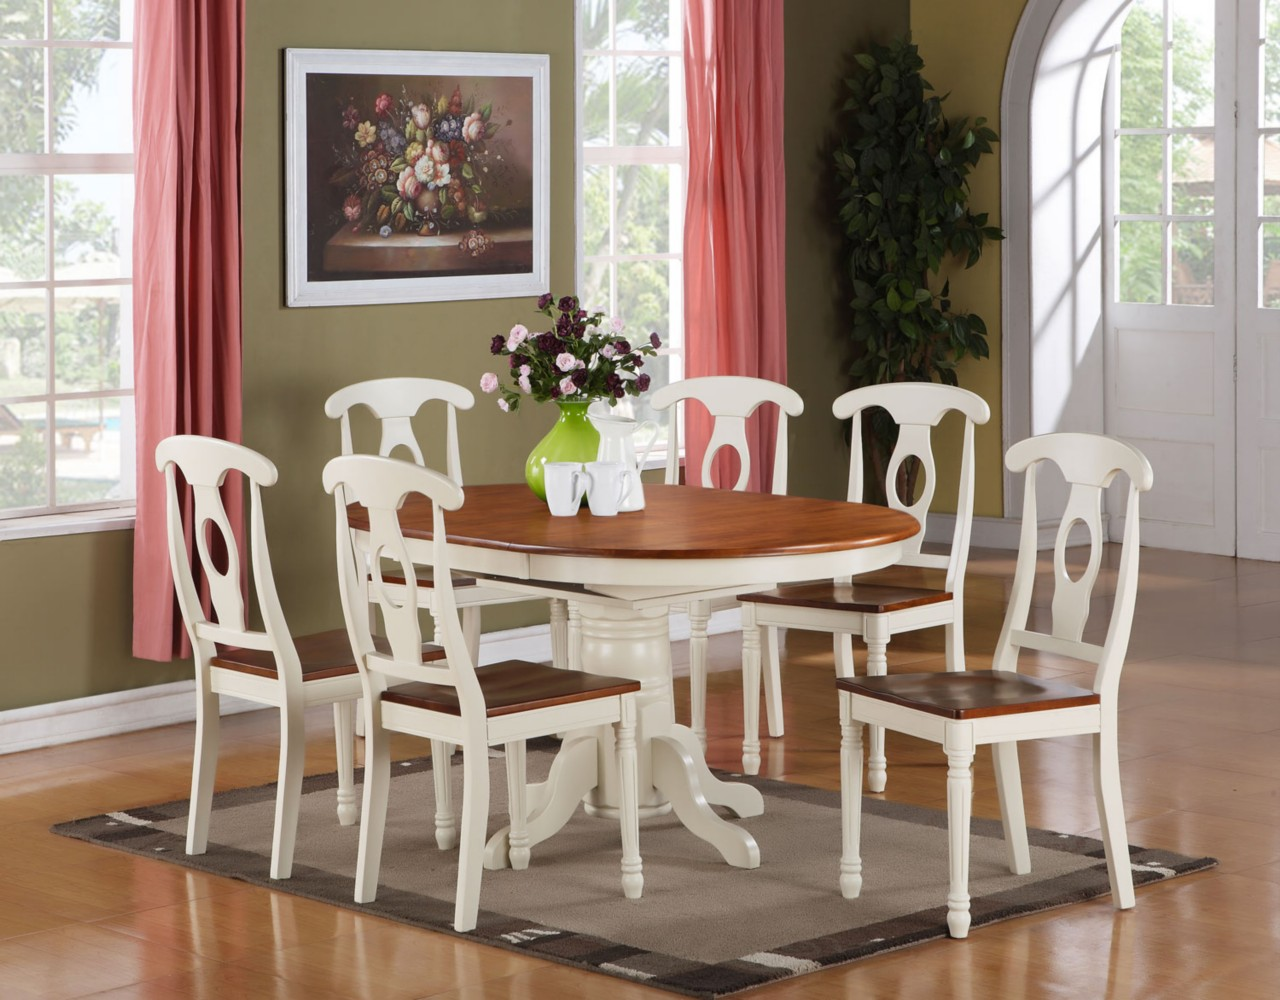 Kitchen And Dining Room Chairs 5pc Oval Dinette Kitchen Dining Room Set Table With 4